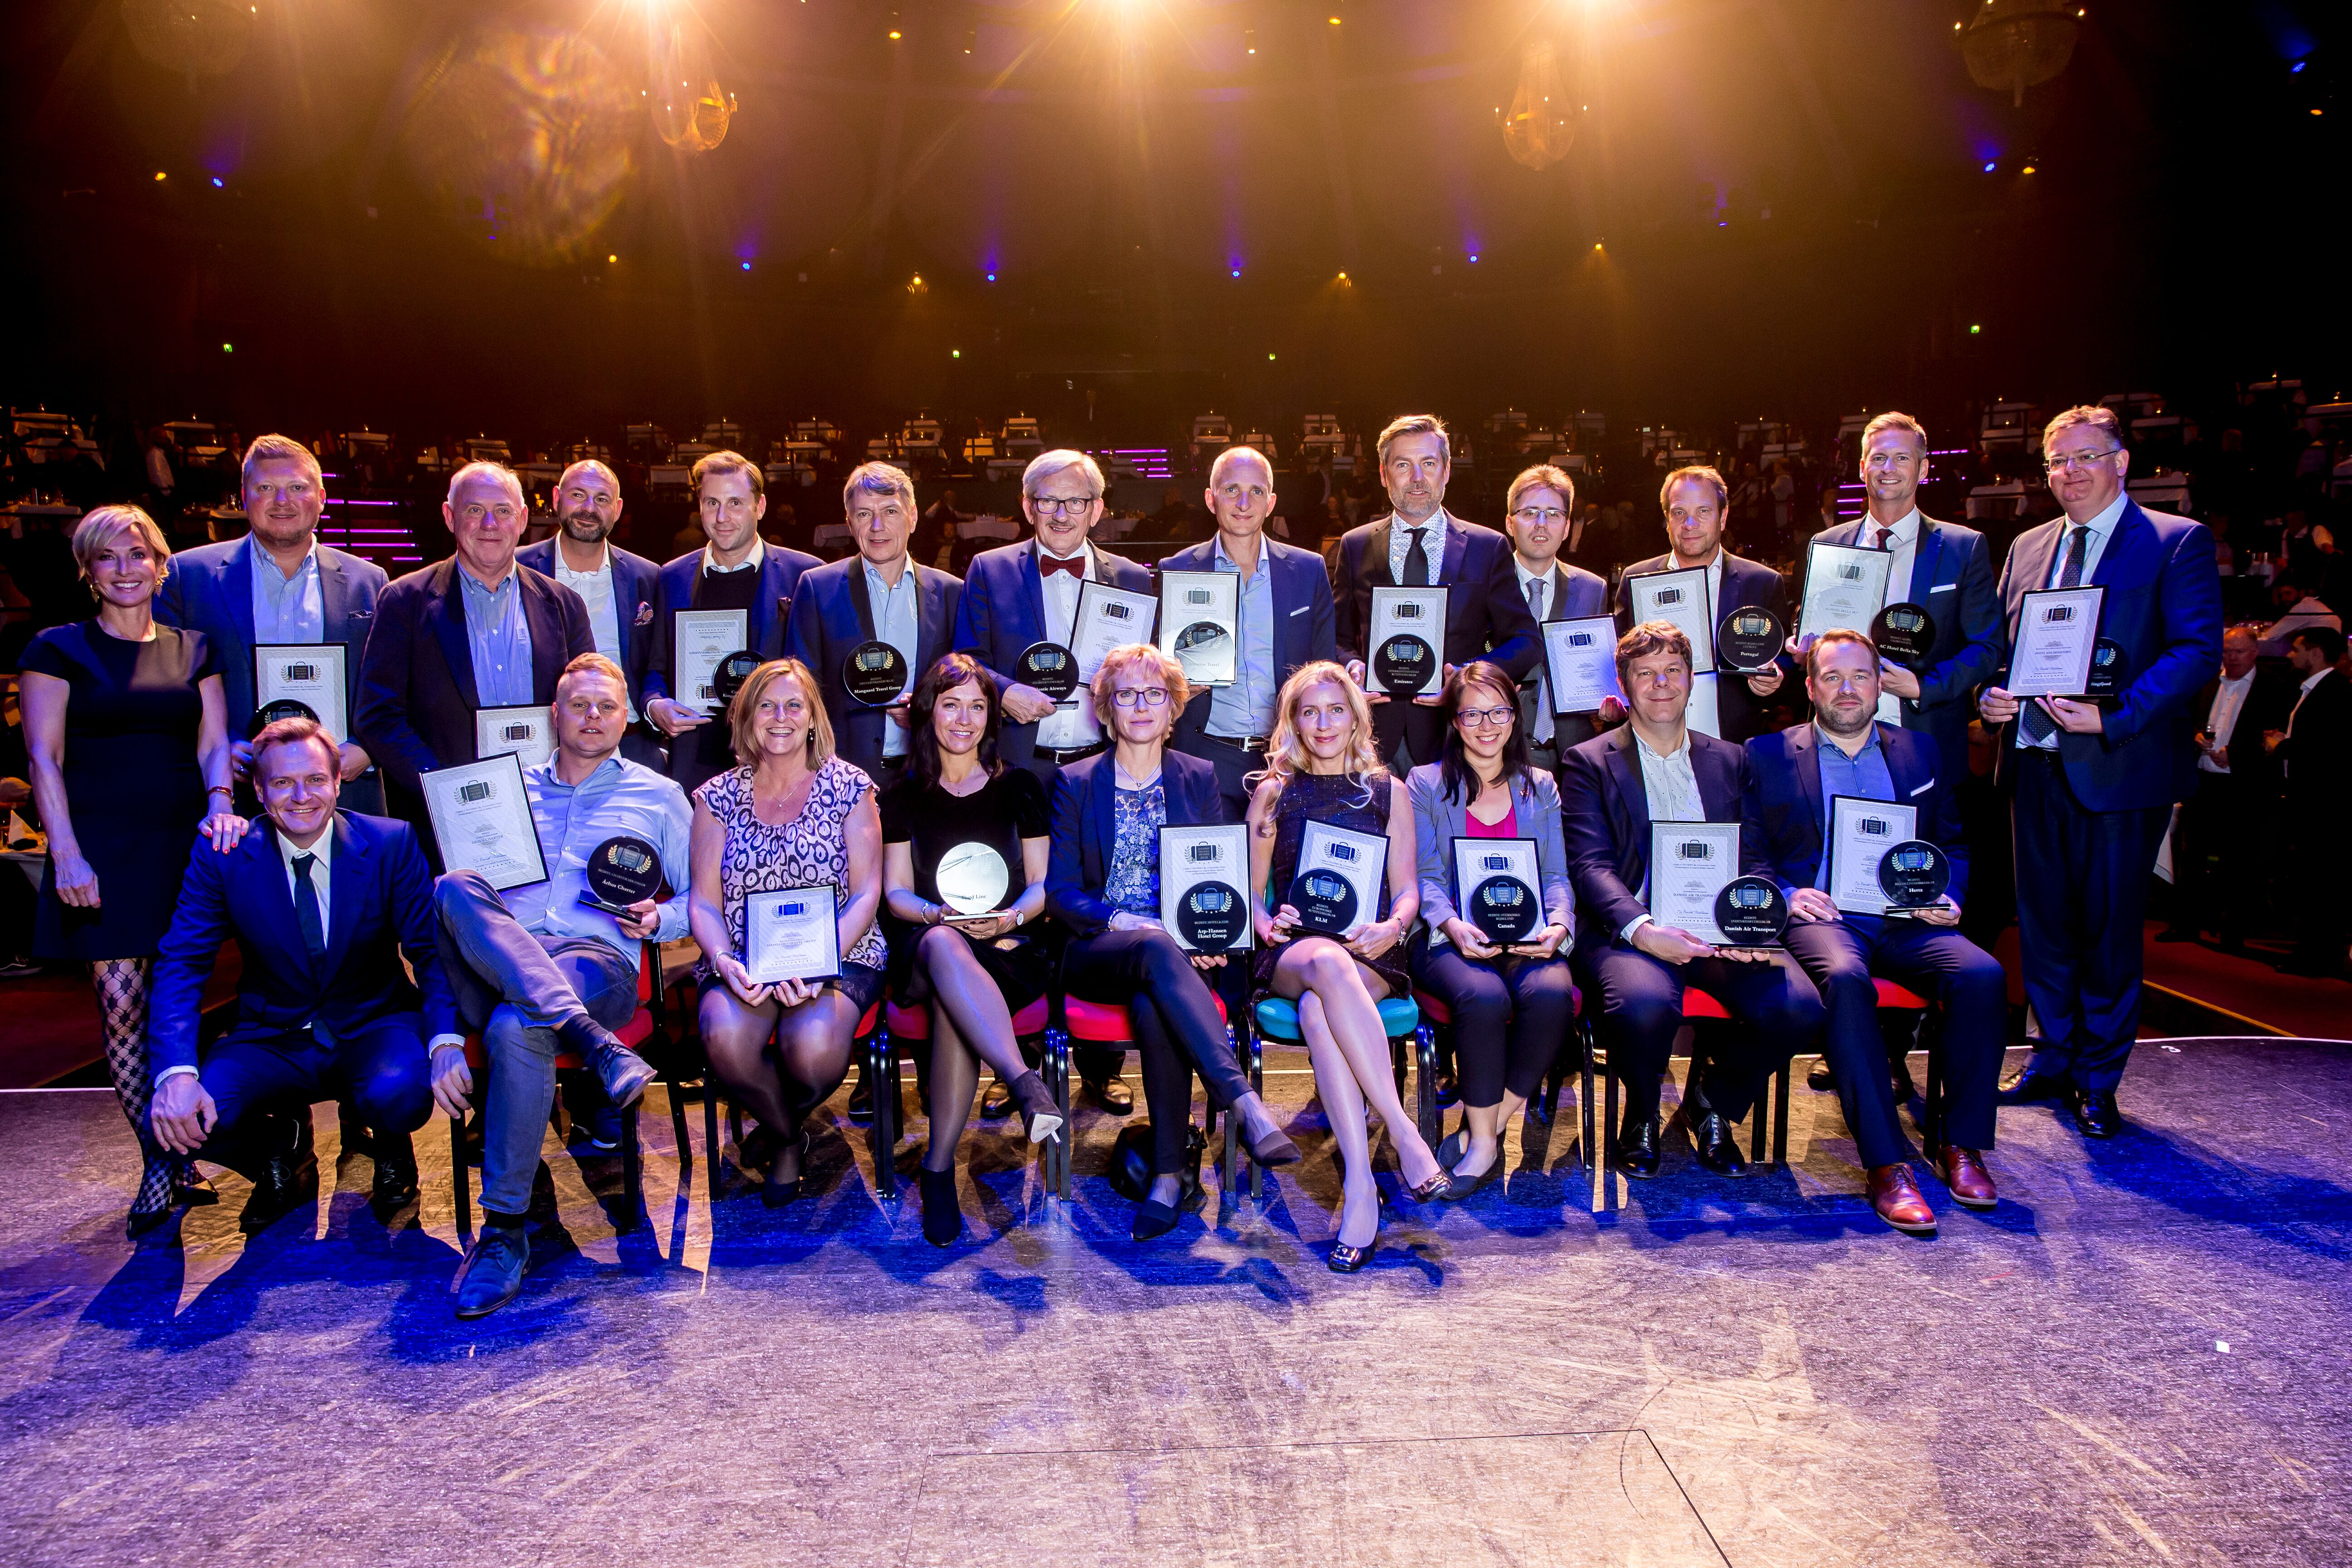 De 18 vindere af Danish Travel Awards i 2018 – ved arrangementet den 2. oktober i år uddeles der 20 awards. Foto: Michael Stub.